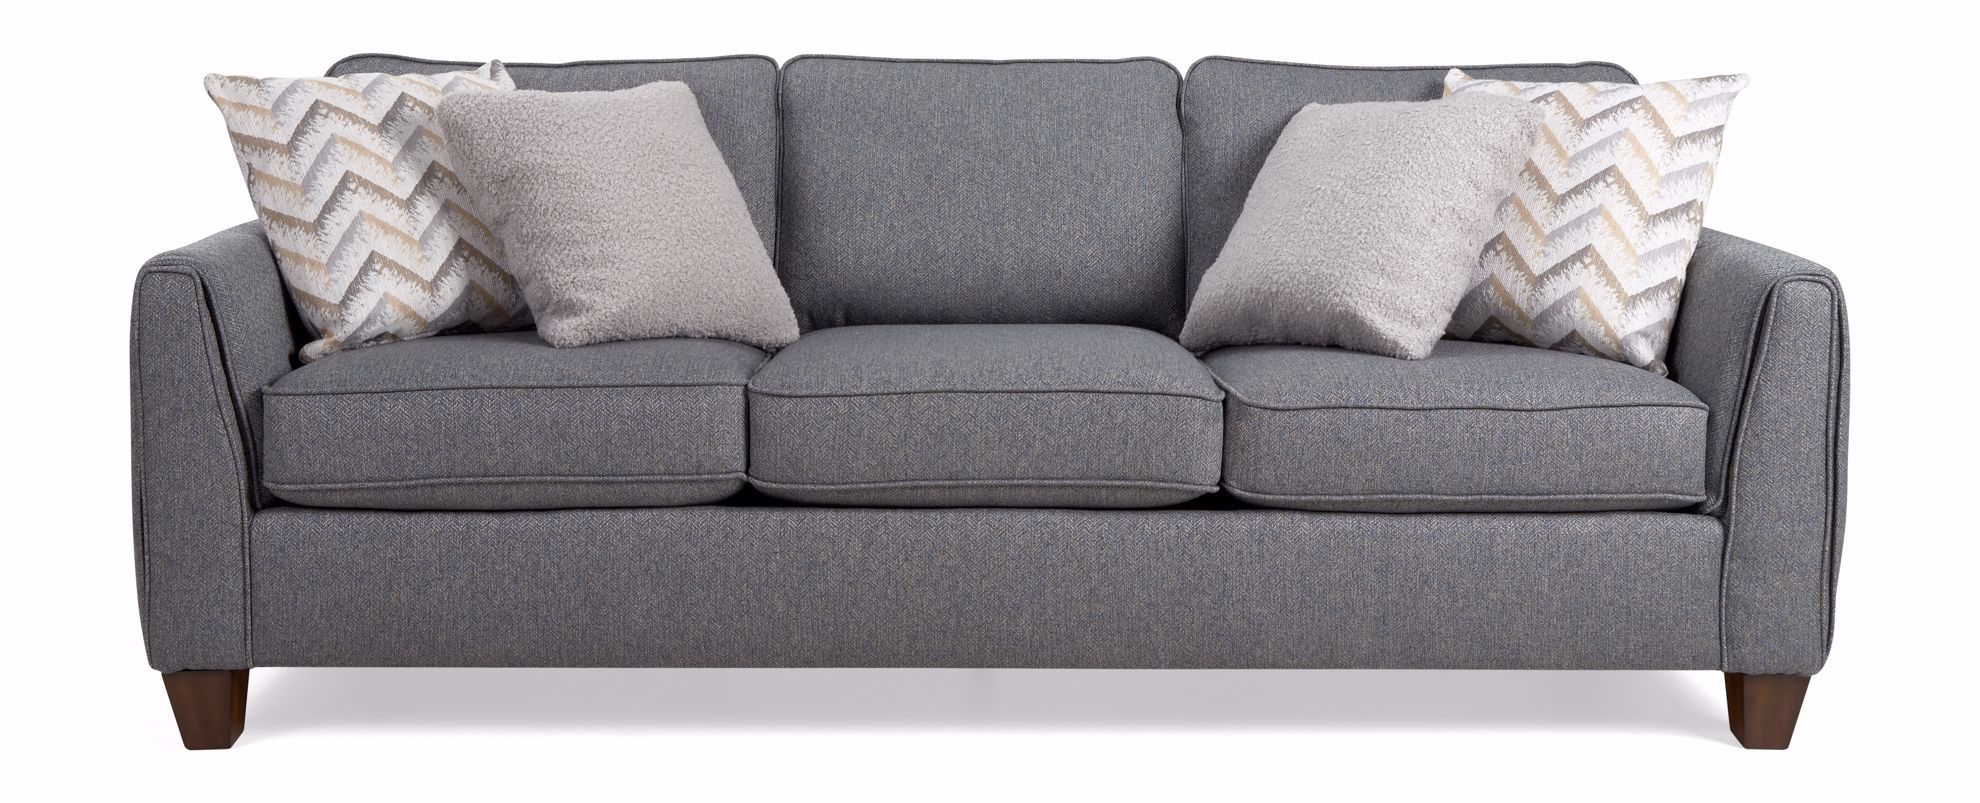 Picture of Bryce Blue Sofa